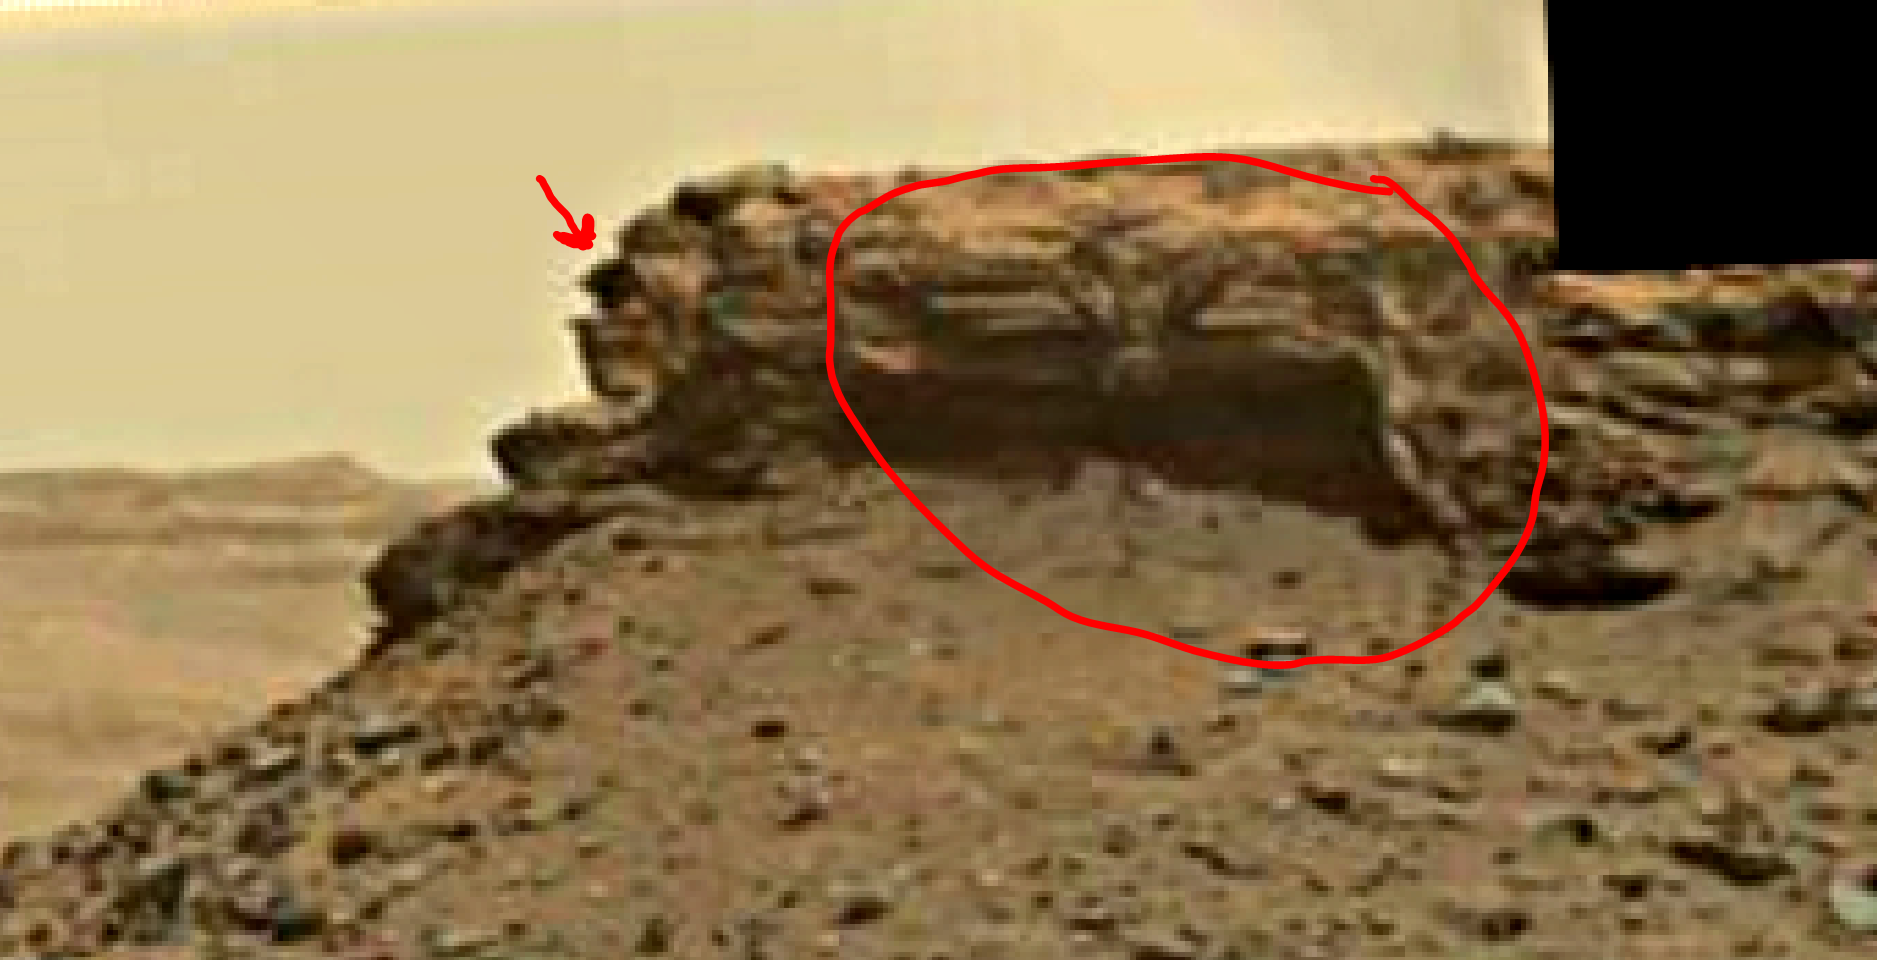 mars sol 1438 anomaly artifacts 2a was life on mars